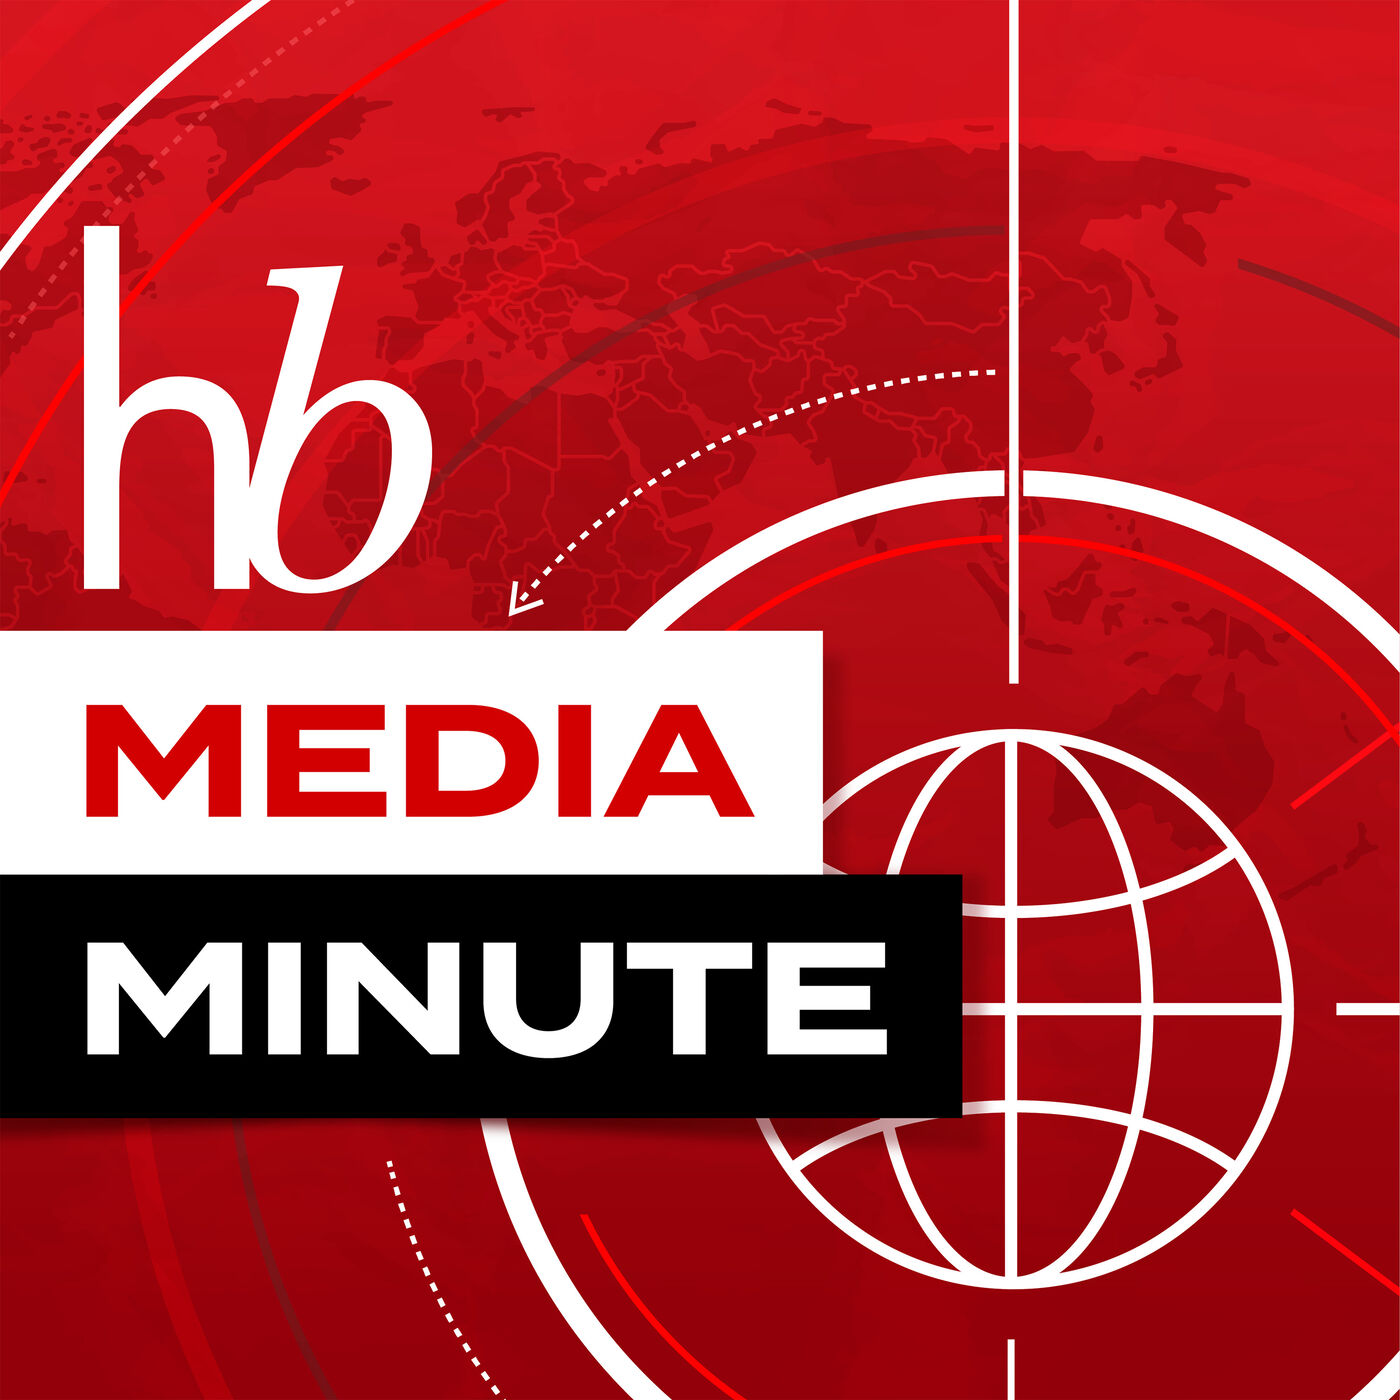 HB Media Minute Episode 4 - How to Avoid Liability for Posting Photos and Other Online Content